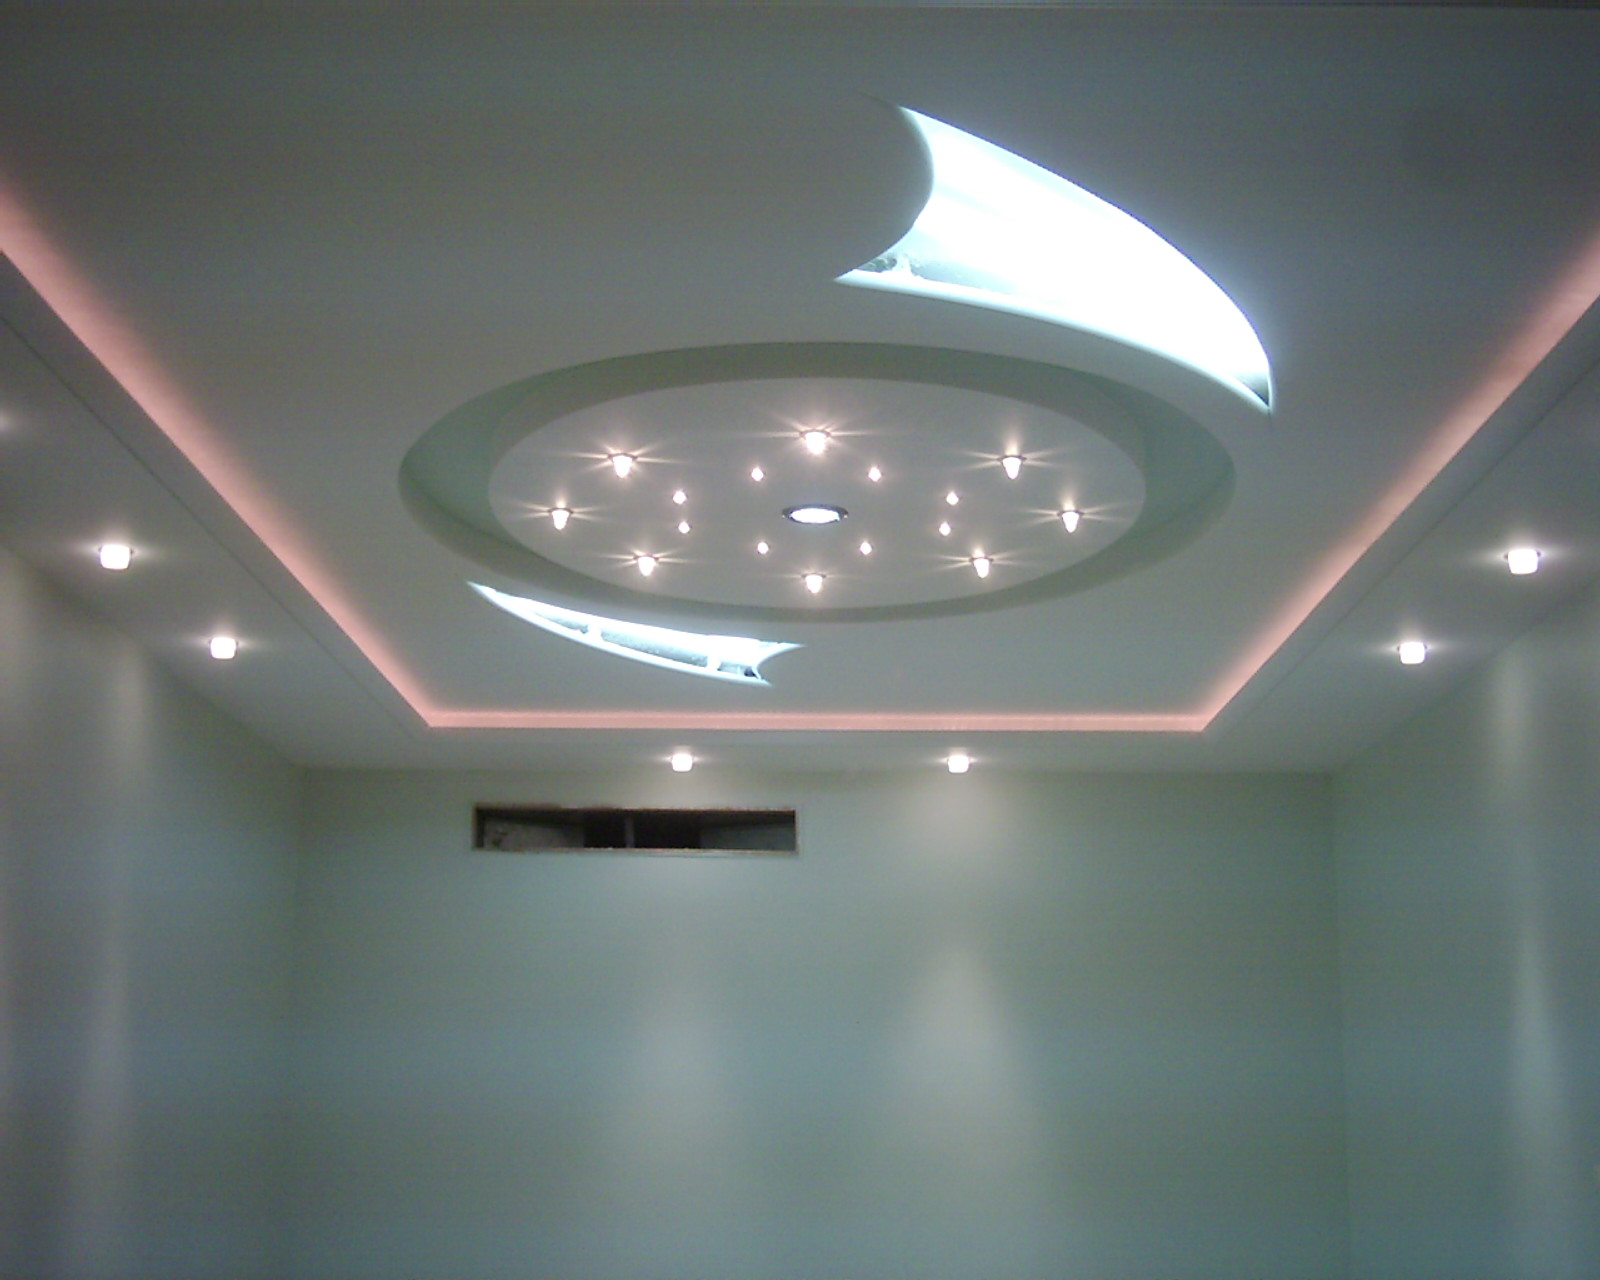 Foux plafond en platre platre for Decoration plafond en platre